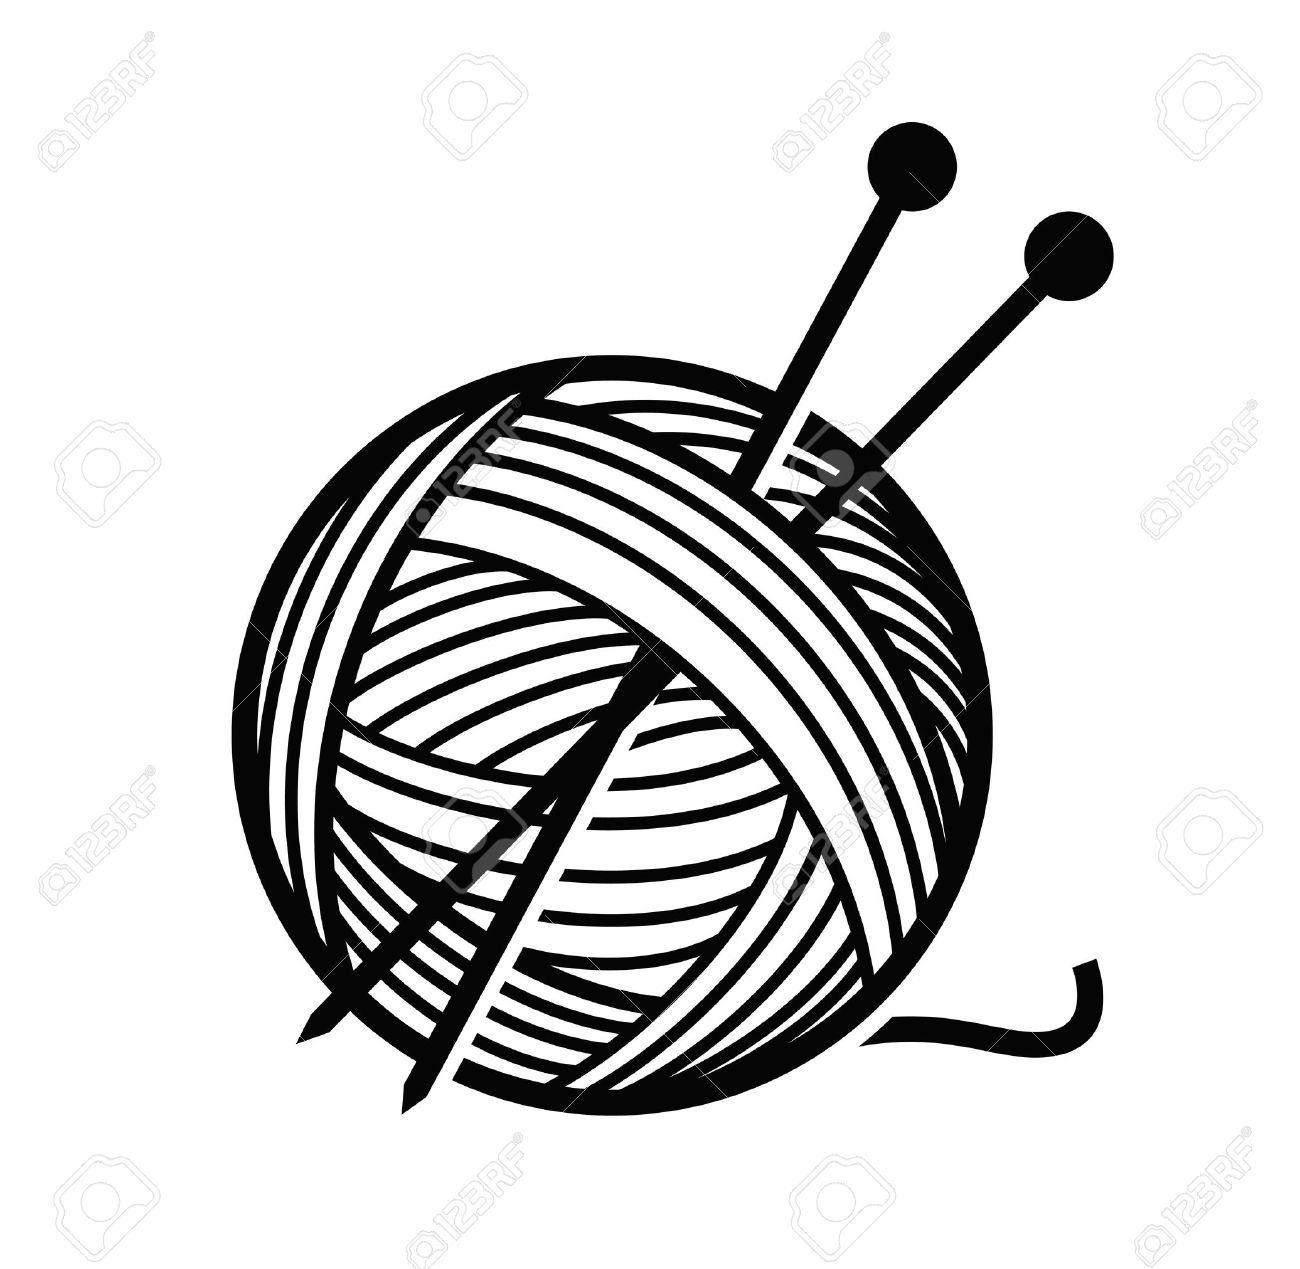 Wool clipart black and white 4 » Clipart Station.